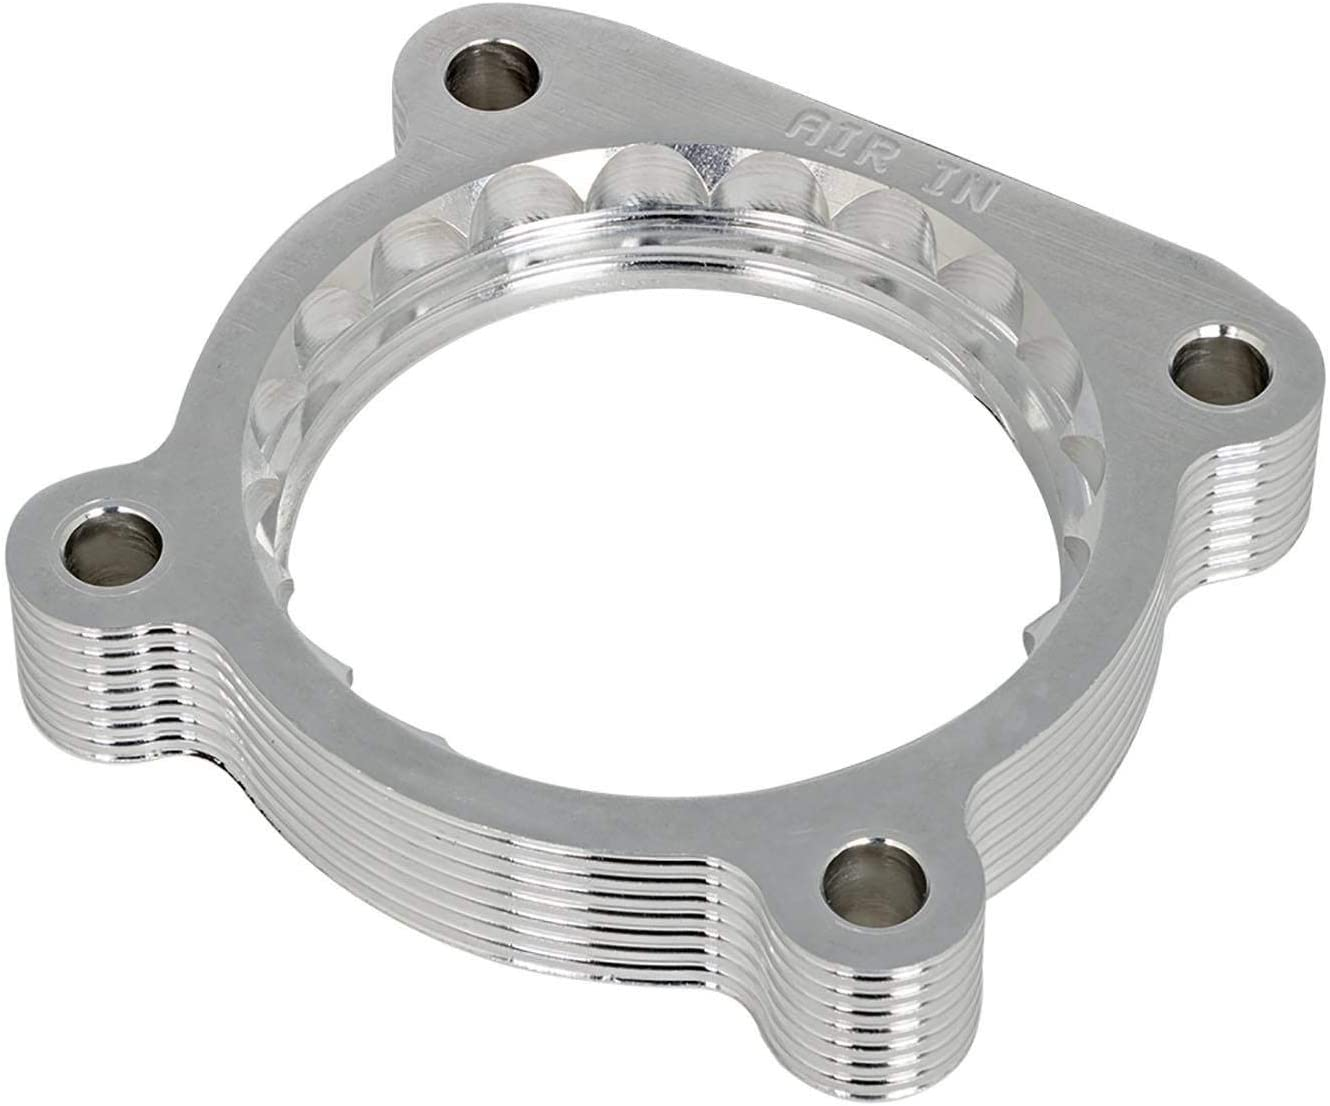 aFe Power 46-38010 Silver High order Bullet Throttle Spacer Body Ranking TOP11 Toyota